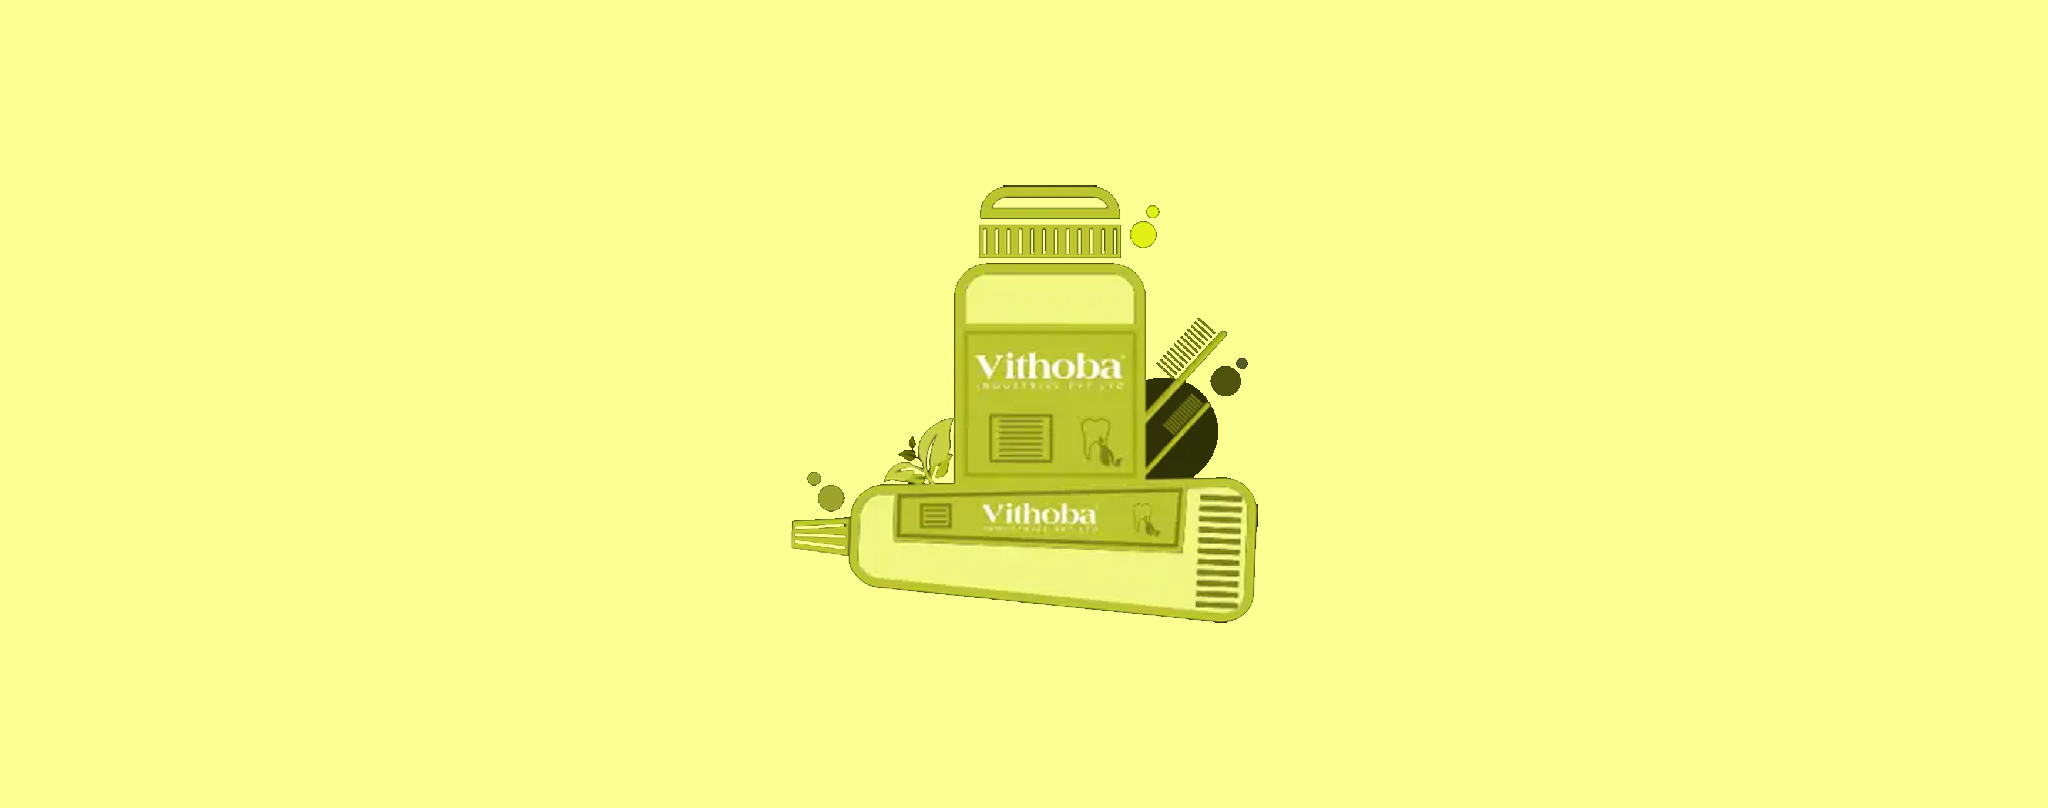 How Vithoba started their Oral care journey?